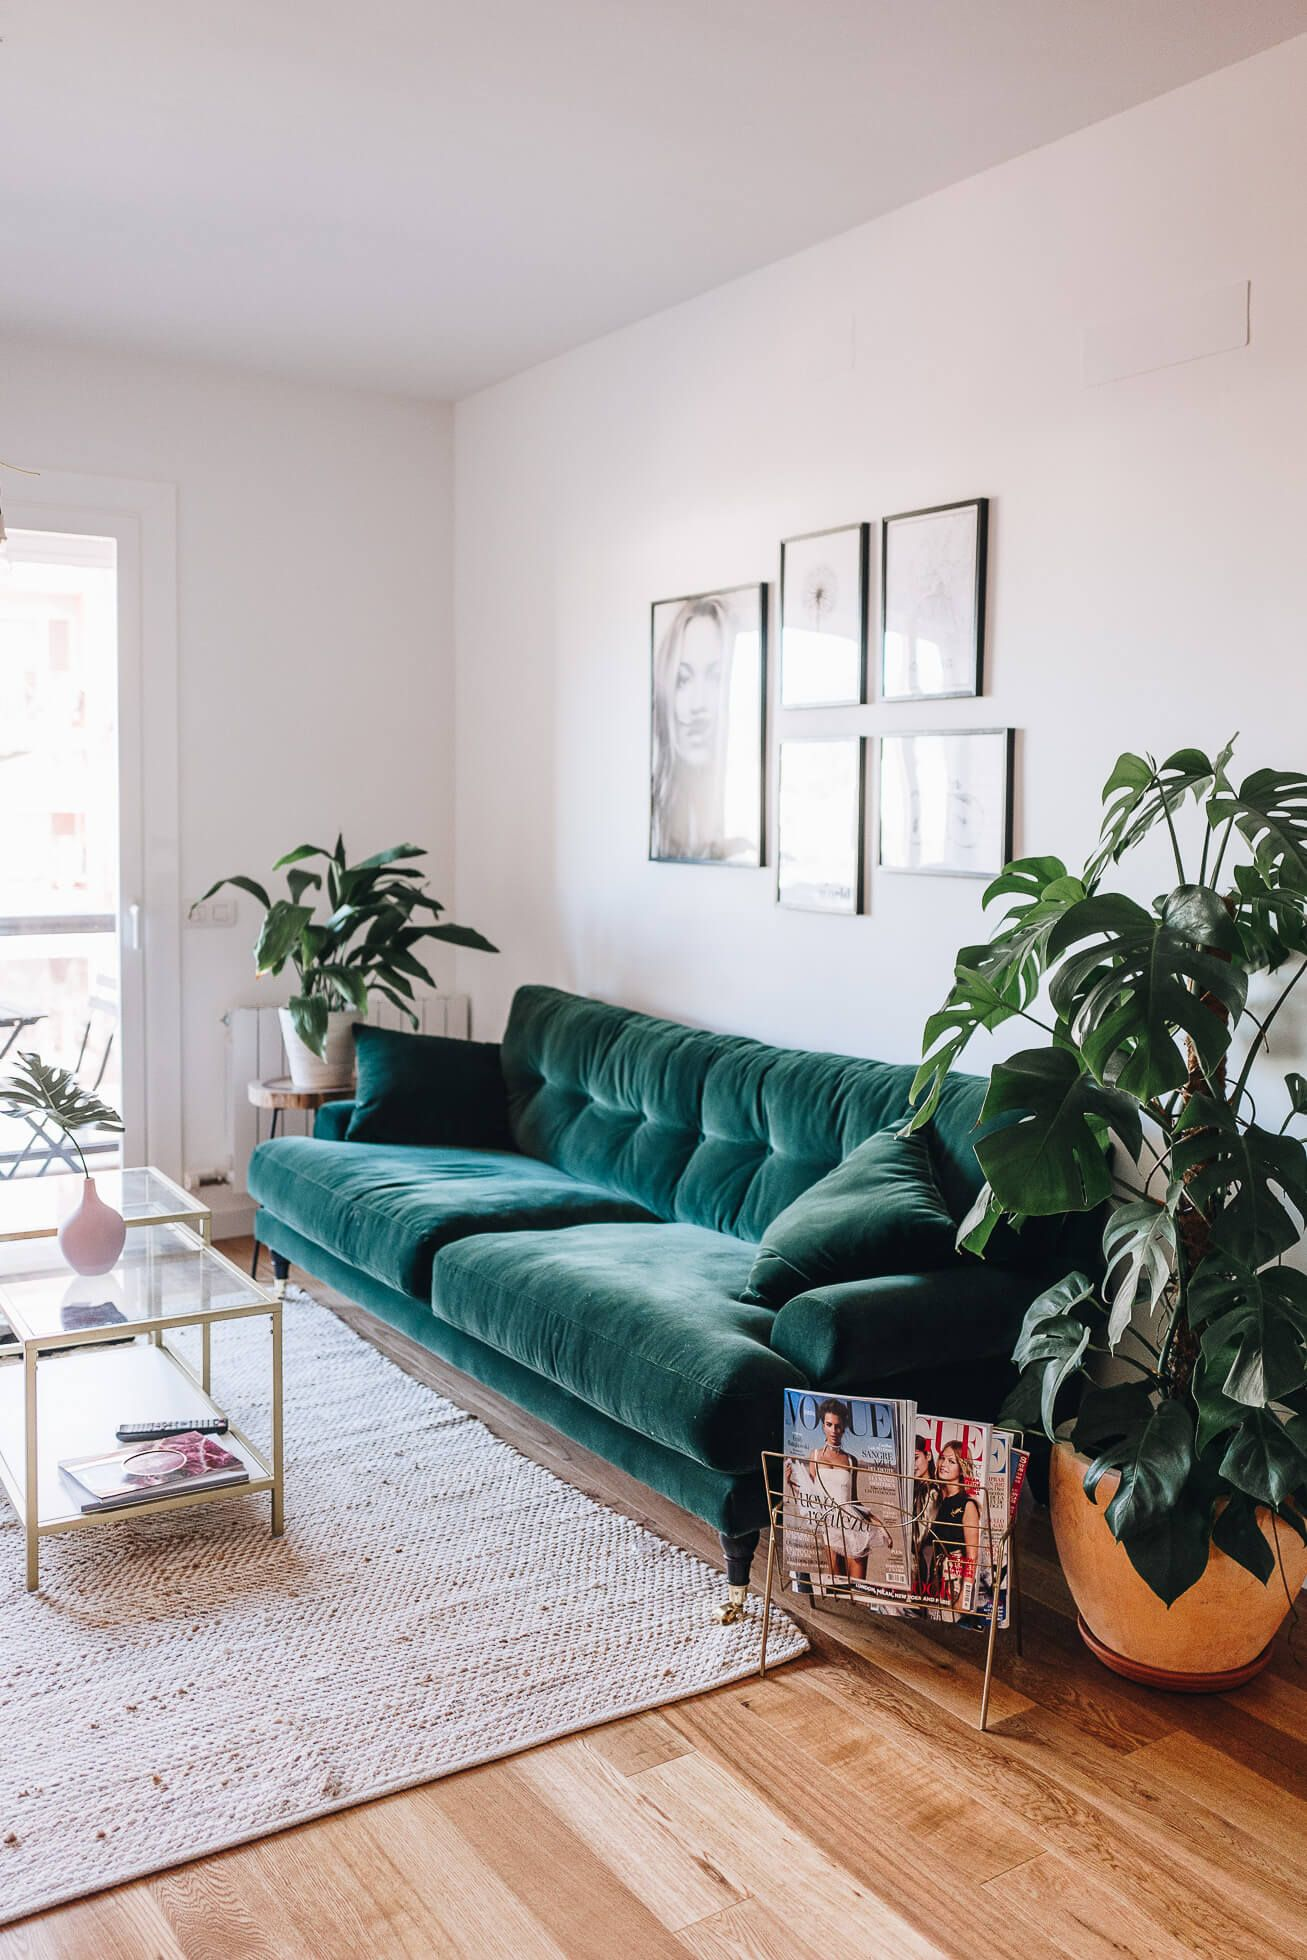 BOHO STYLE: The Green Velvet Sofa, 6+ Stylish Options | Small apartment  decorating living room, Small apartment living room, Living room decor  apartment